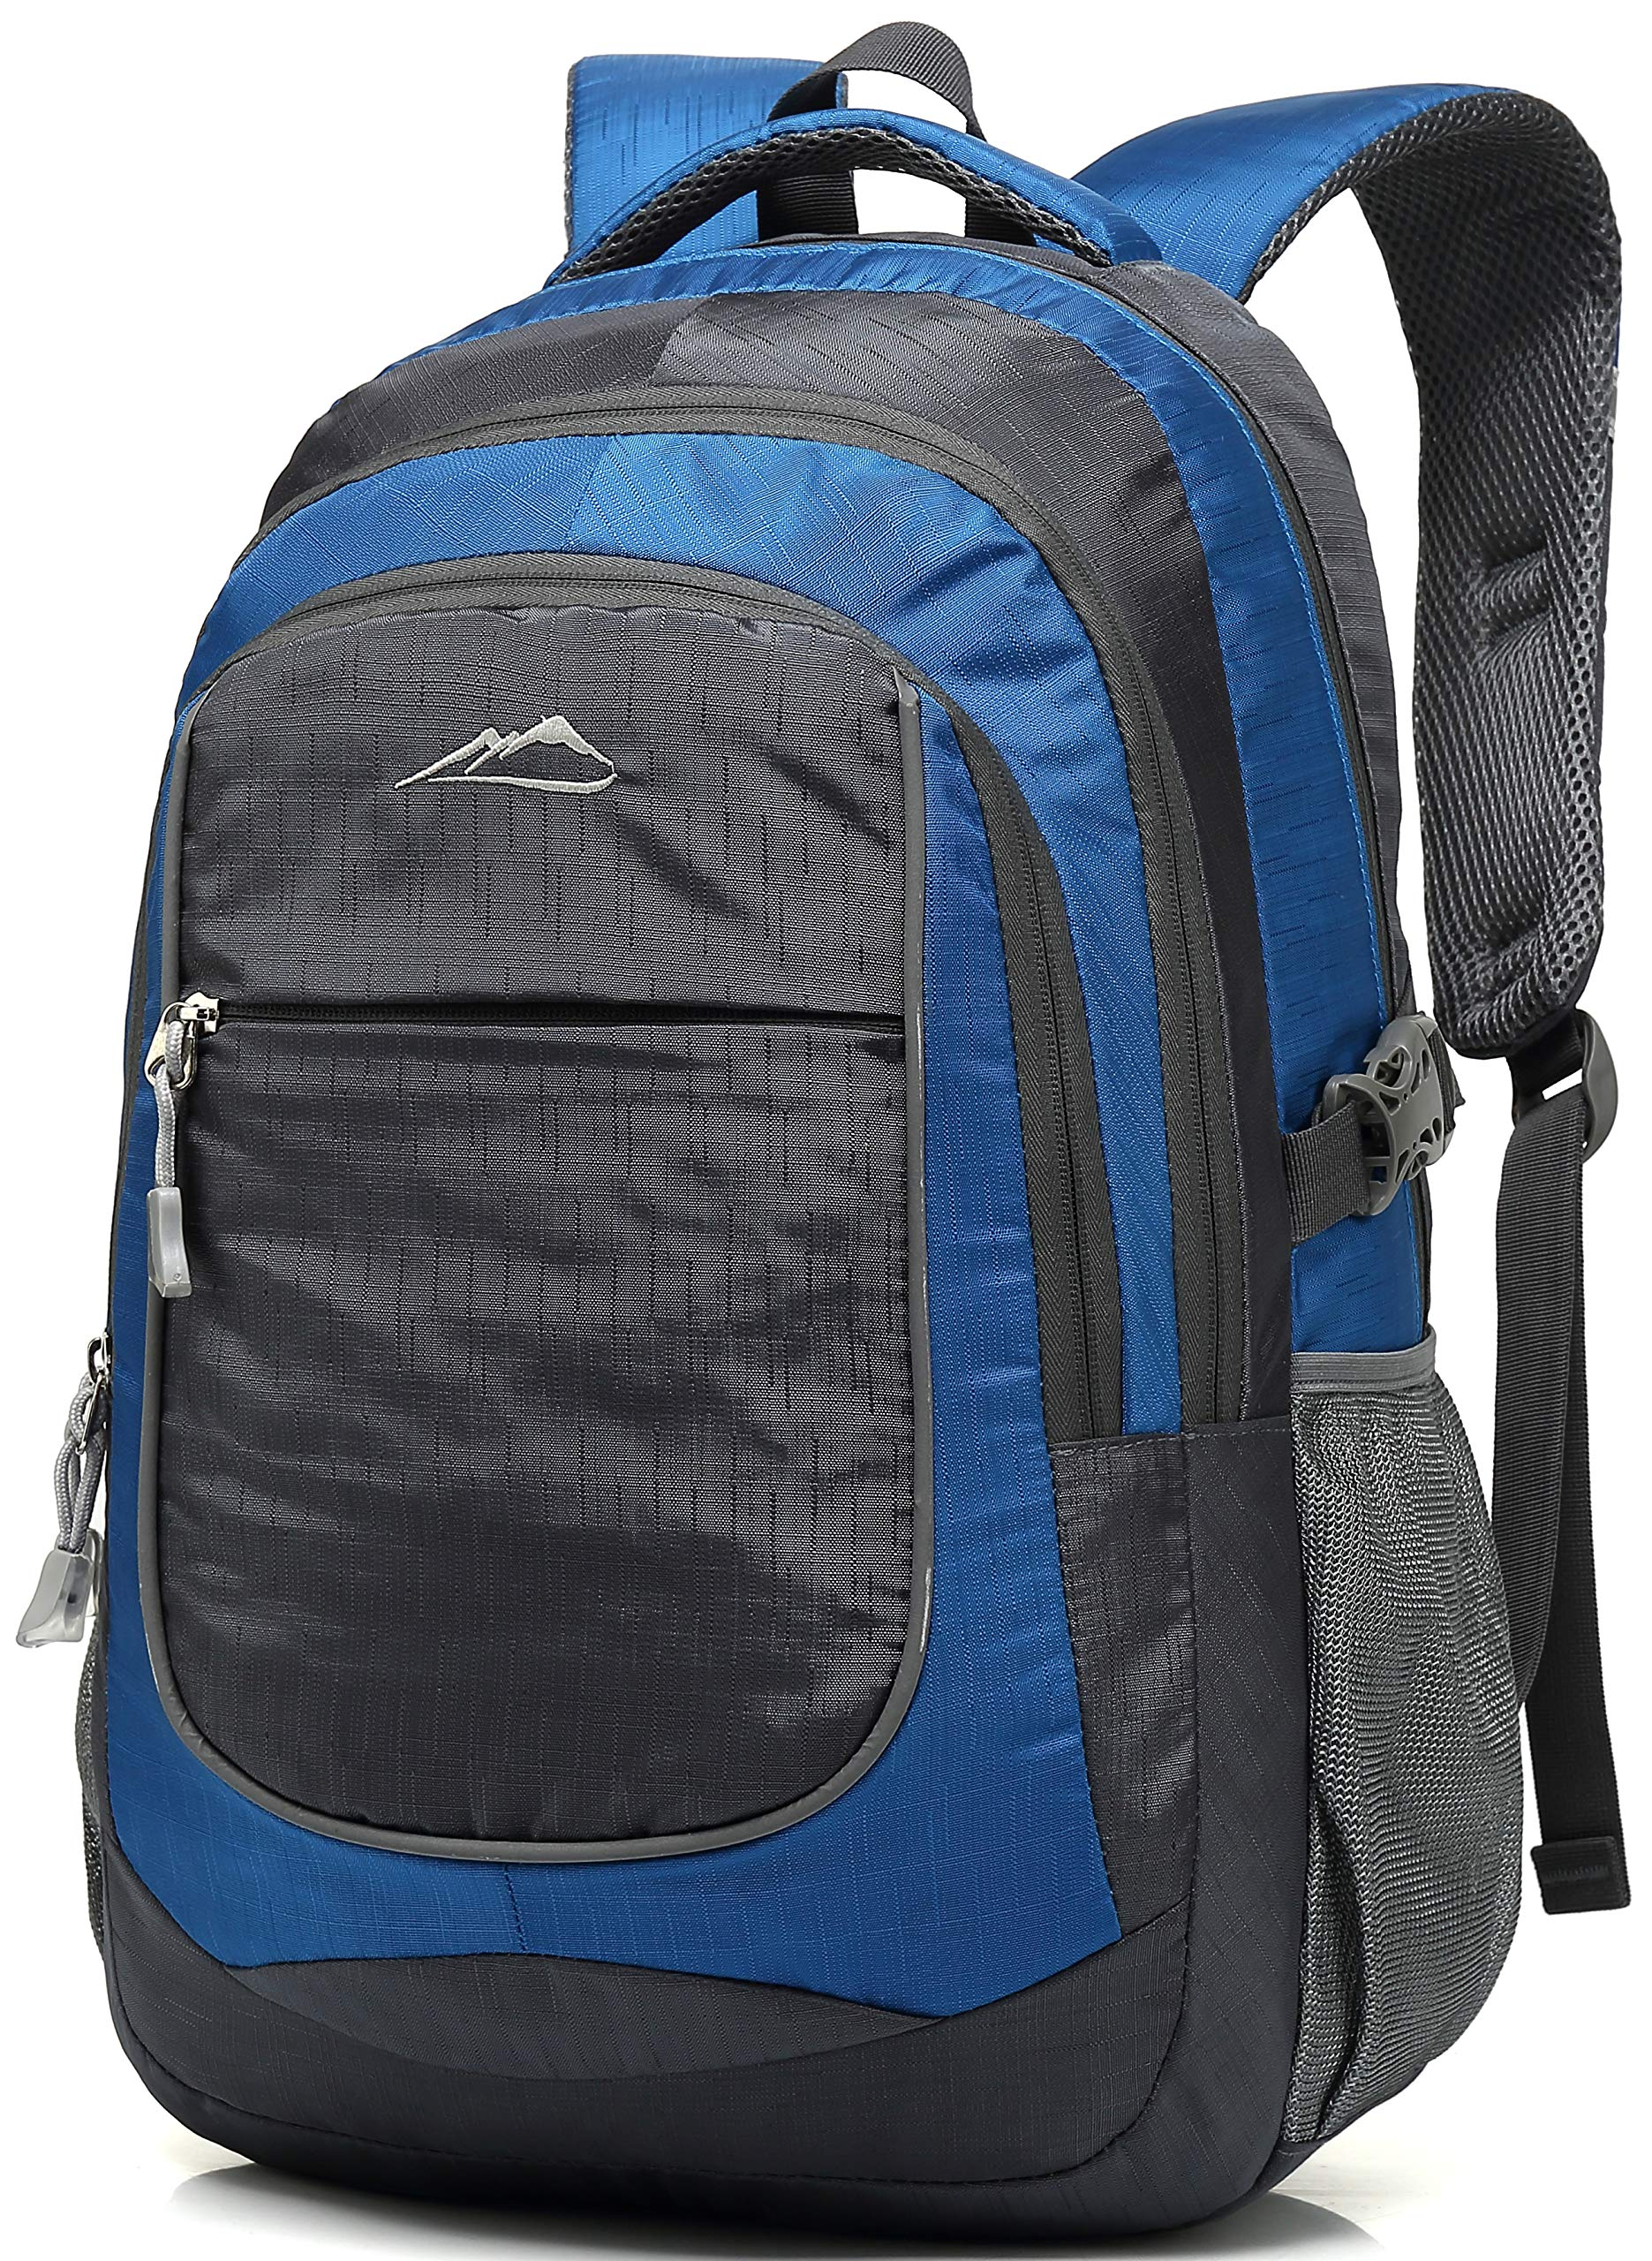 School Backpack For College Travel Hiking Fit Laptop Up to 15.6 Inch Water Resistant (Blue)